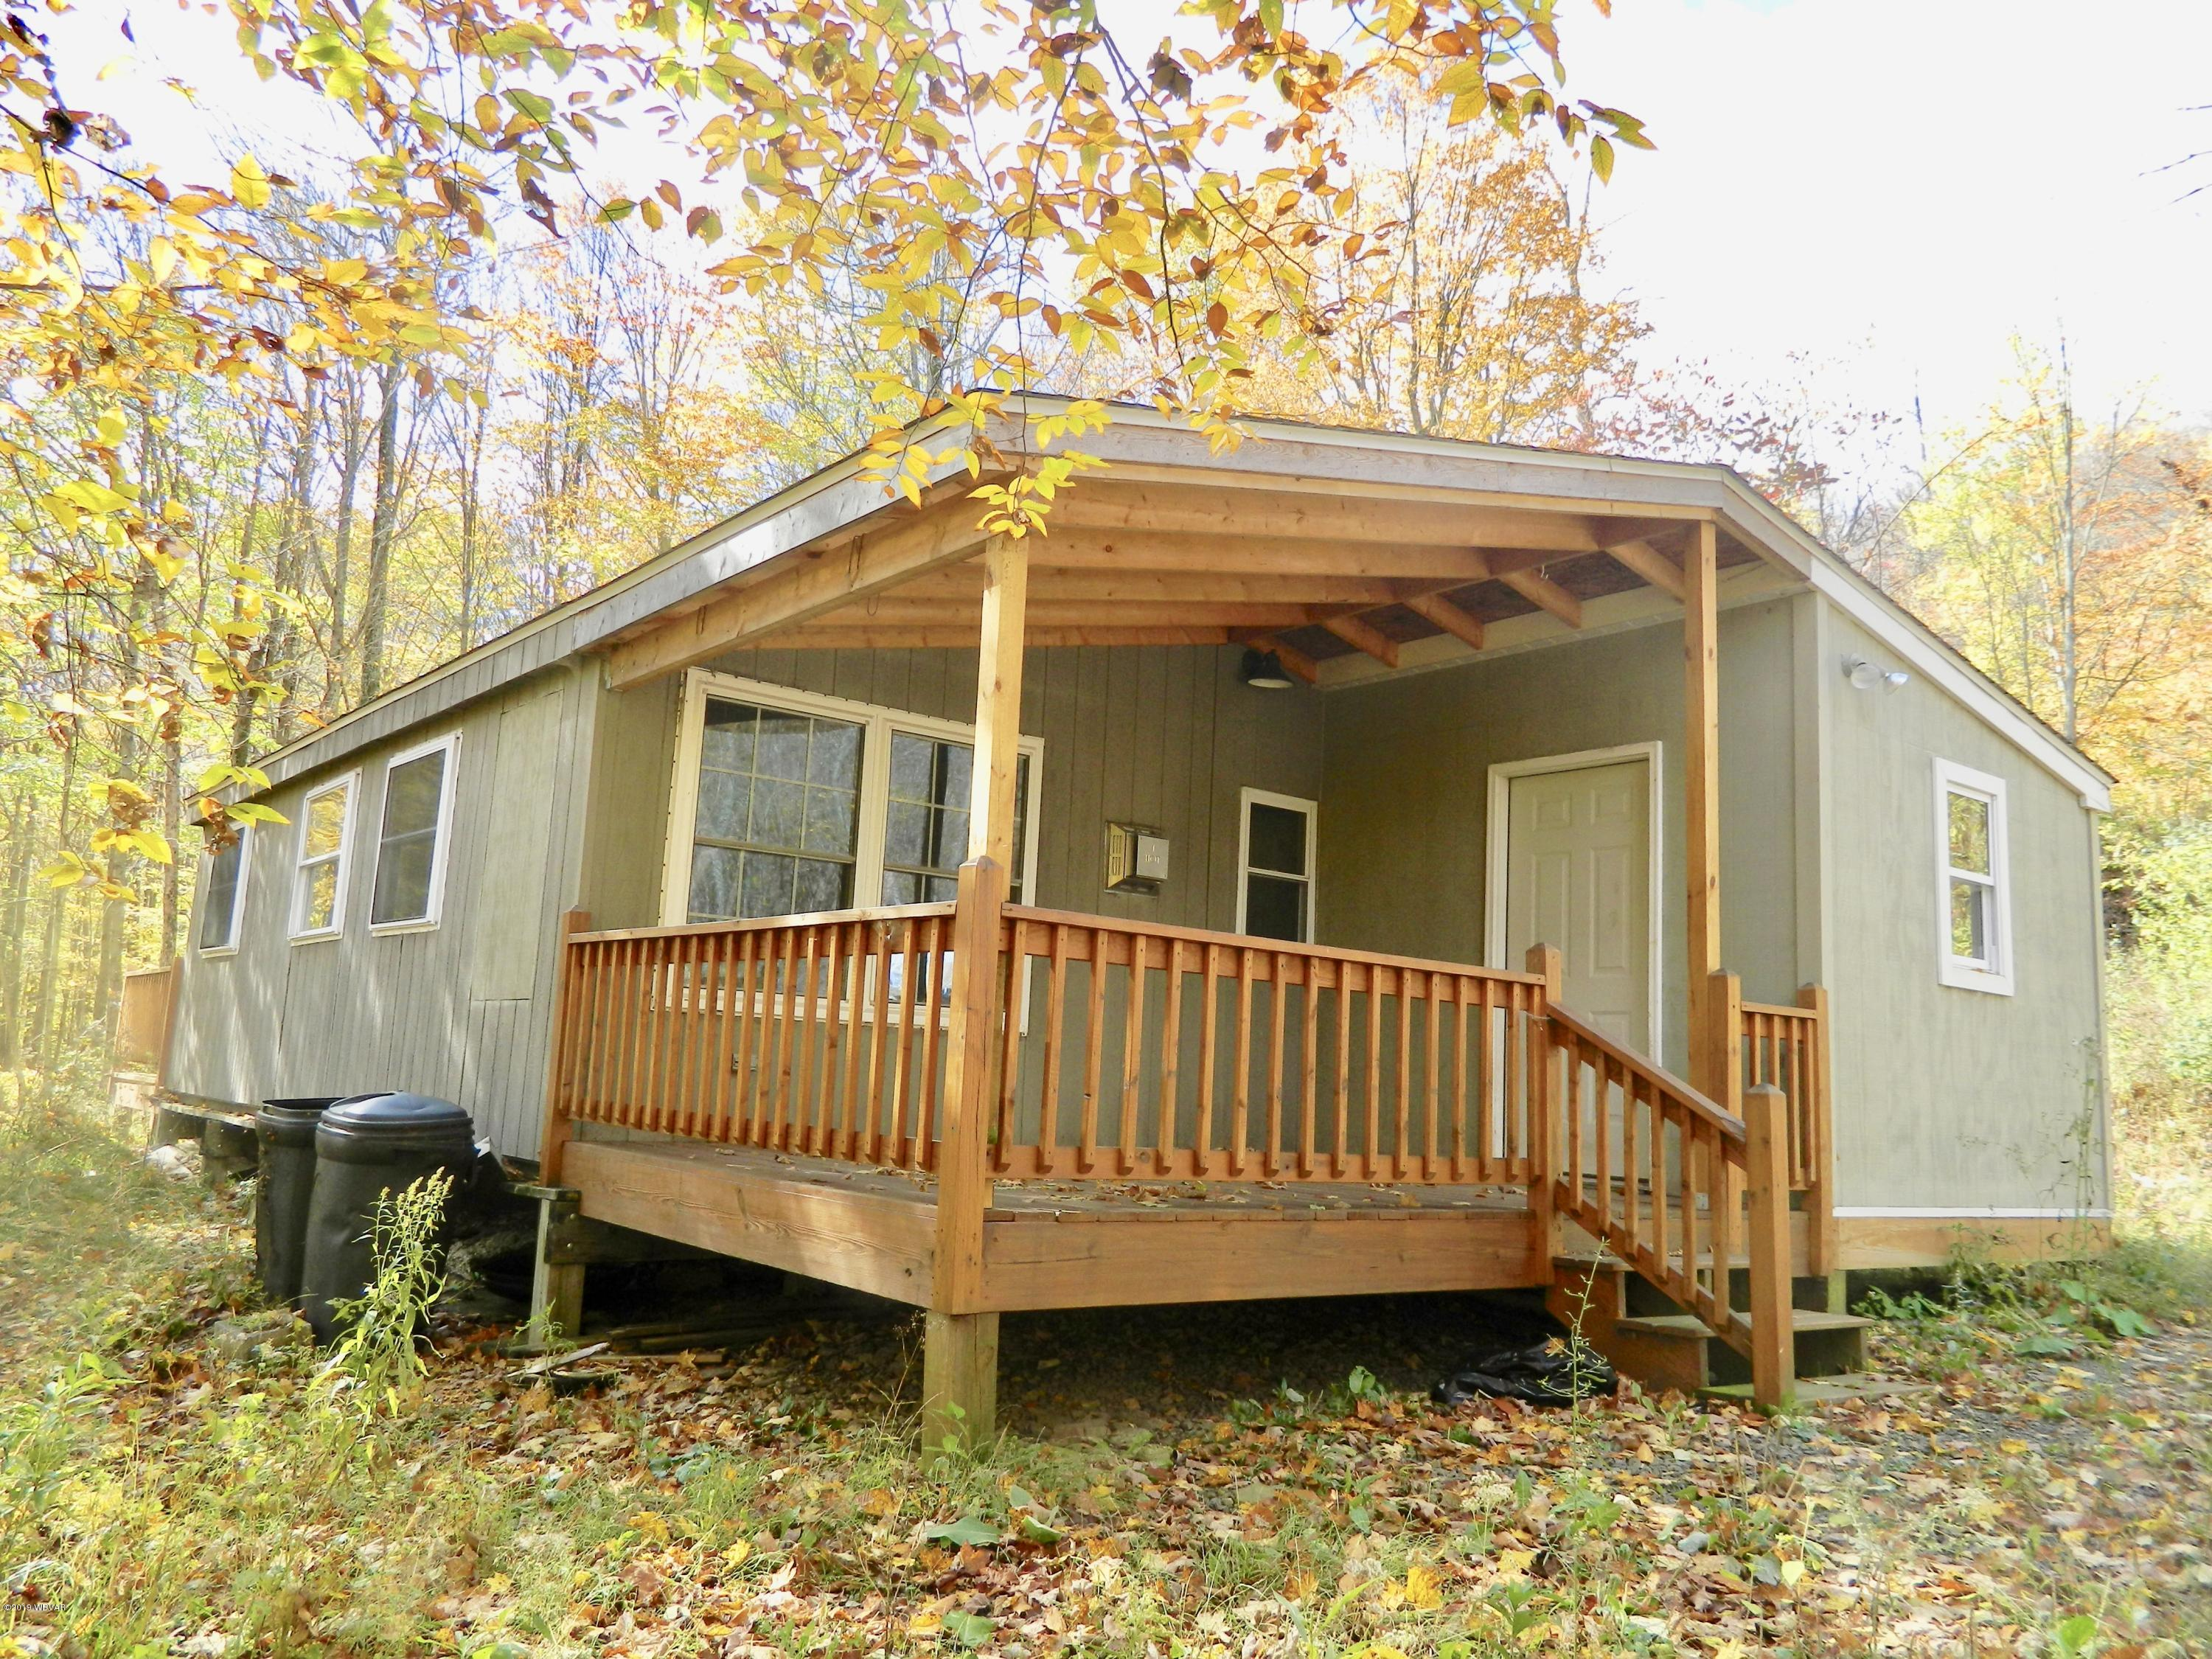 64 RABBIT LANE, Shunk, PA 17768, 2 Bedrooms Bedrooms, ,Cabin/vacation home,For sale,RABBIT,WB-88887